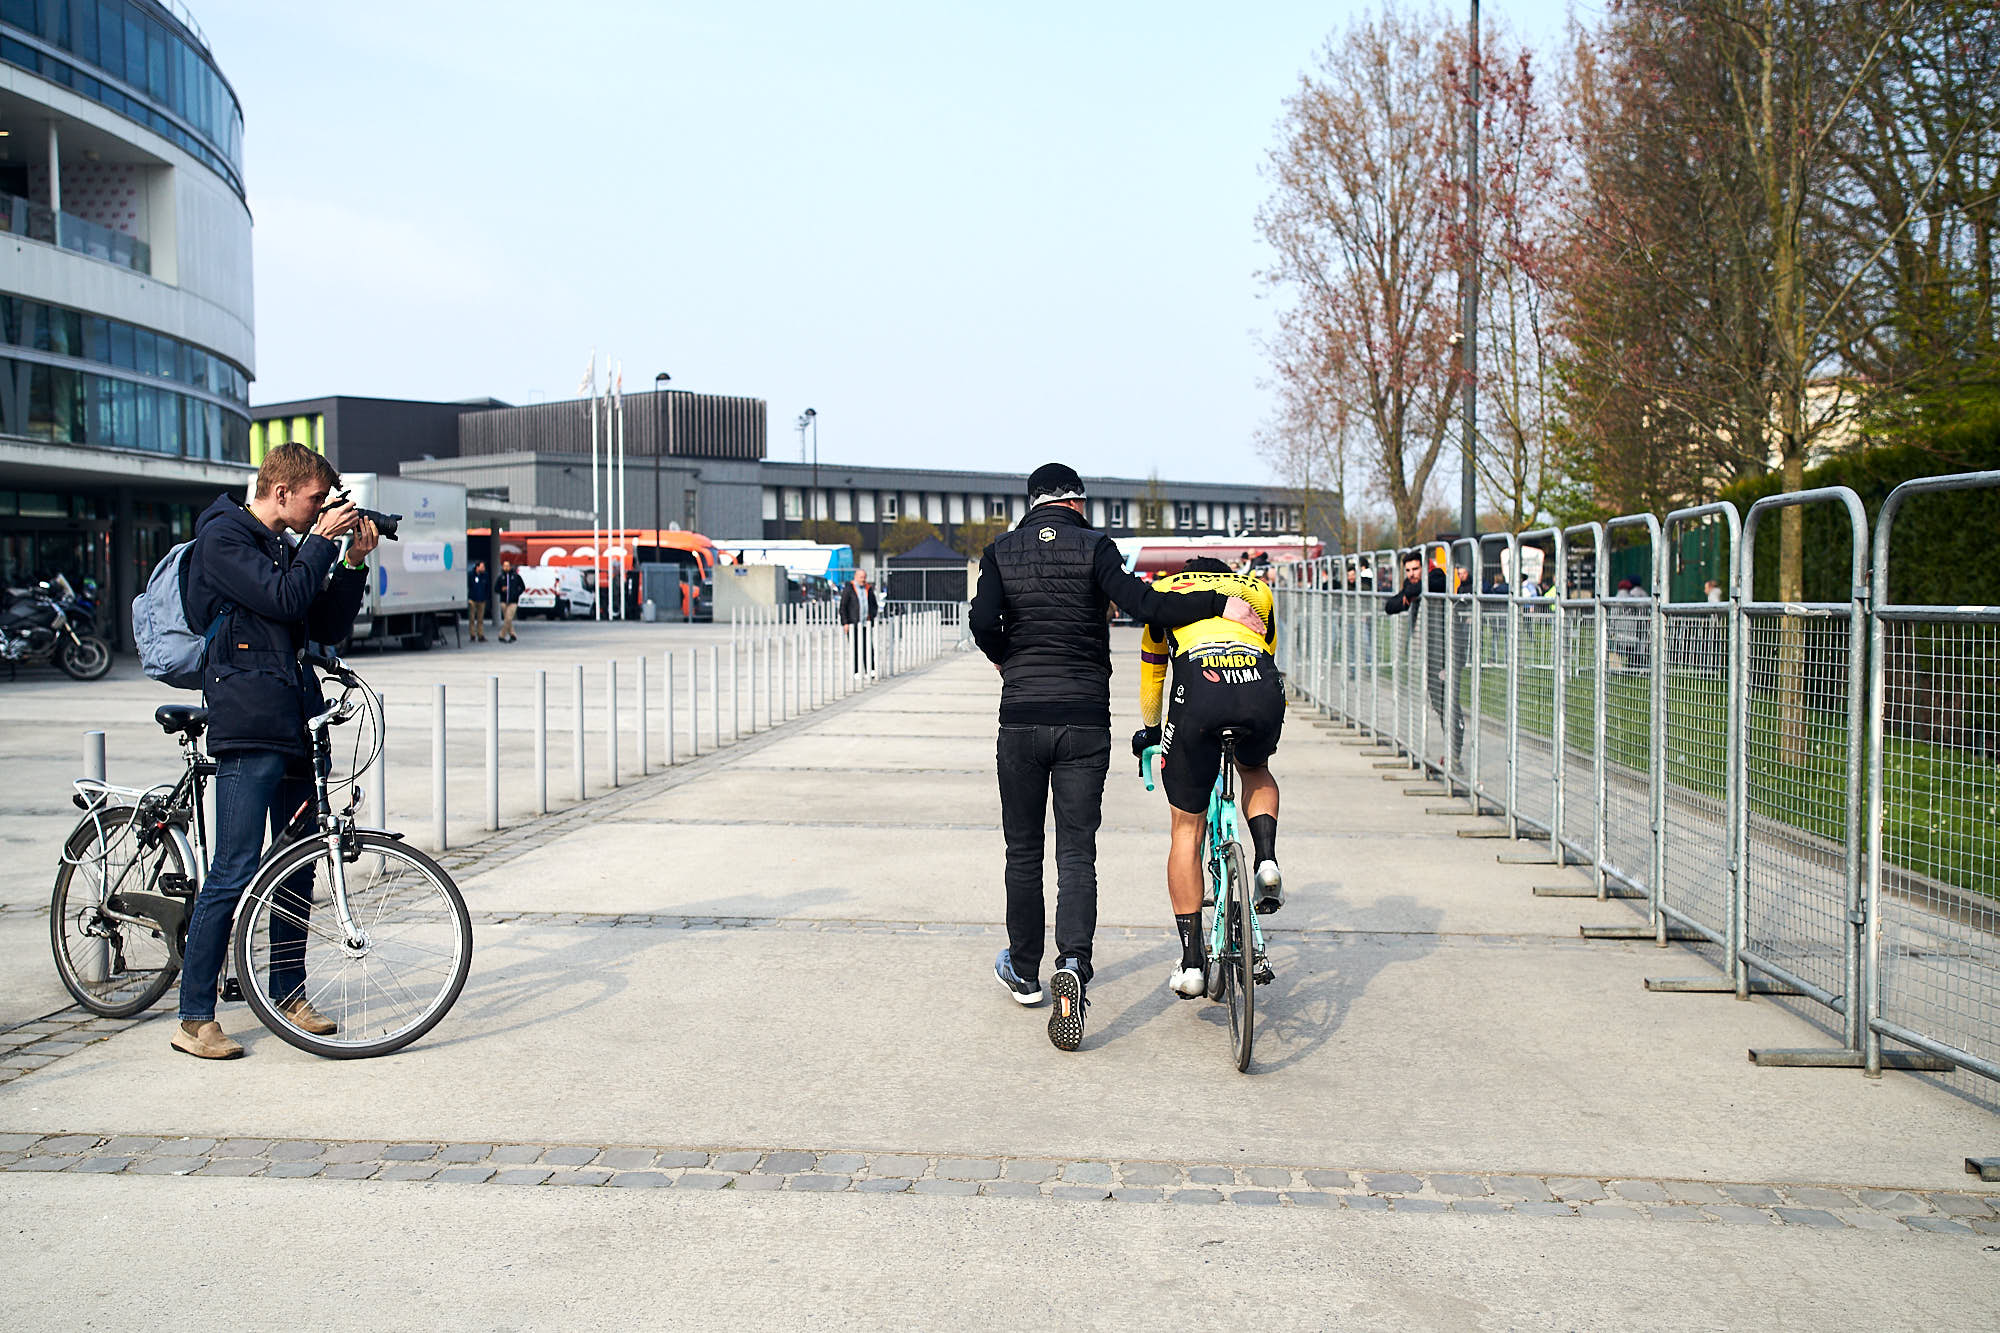 Team Jumbo-Visma cyclist Wout van Aert leaving the Roubaix Velodrome